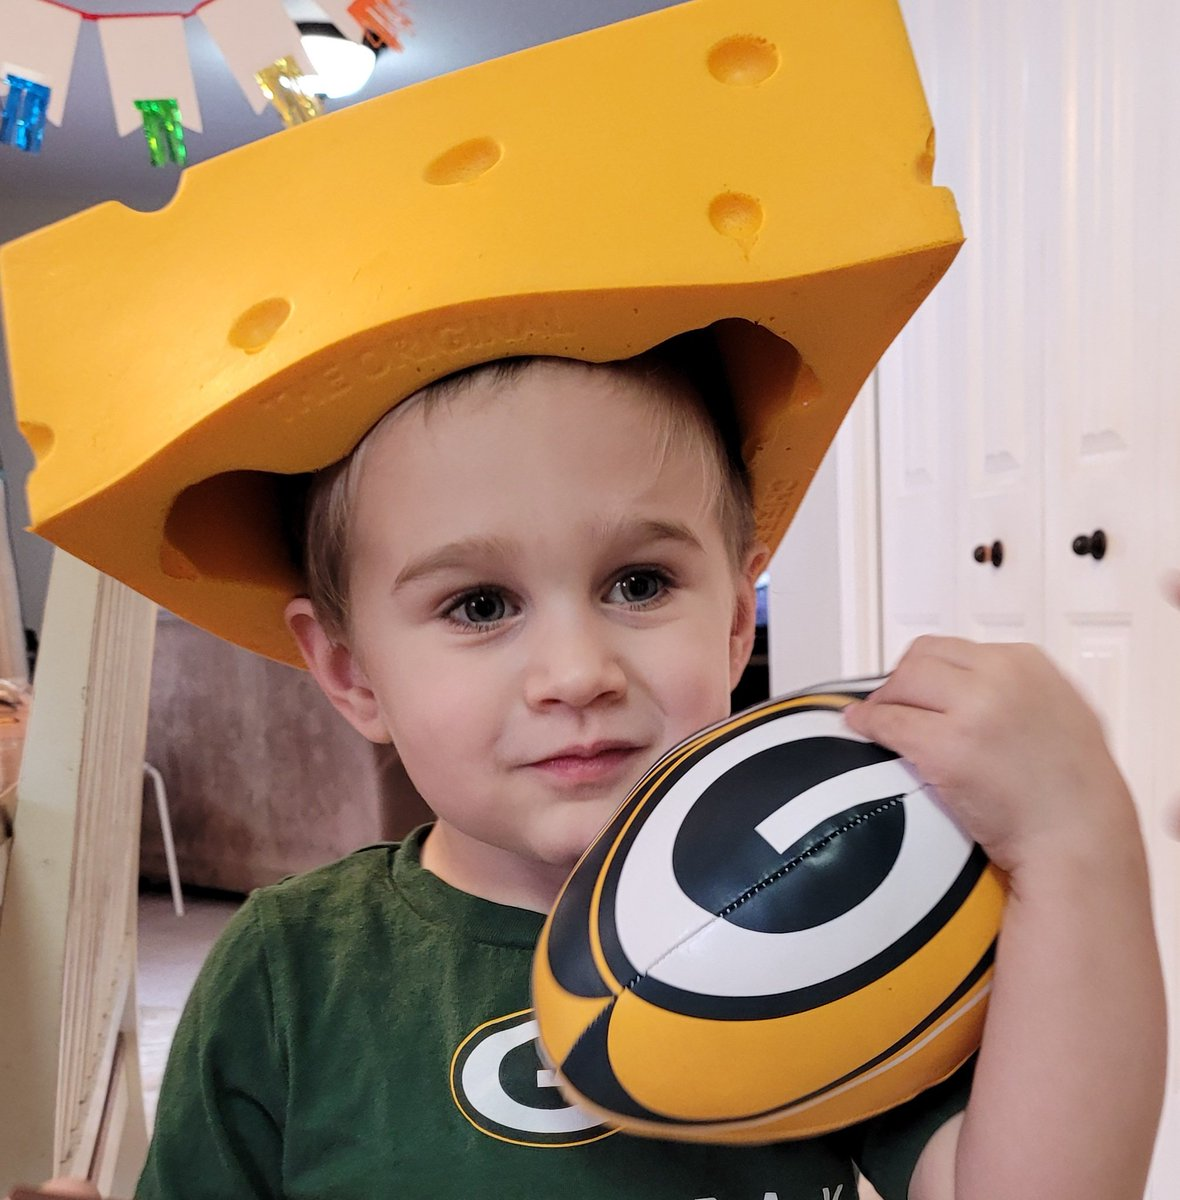 Someone is ready for the NFC championship game to get started! #GoPackGo  cc: @hobocita